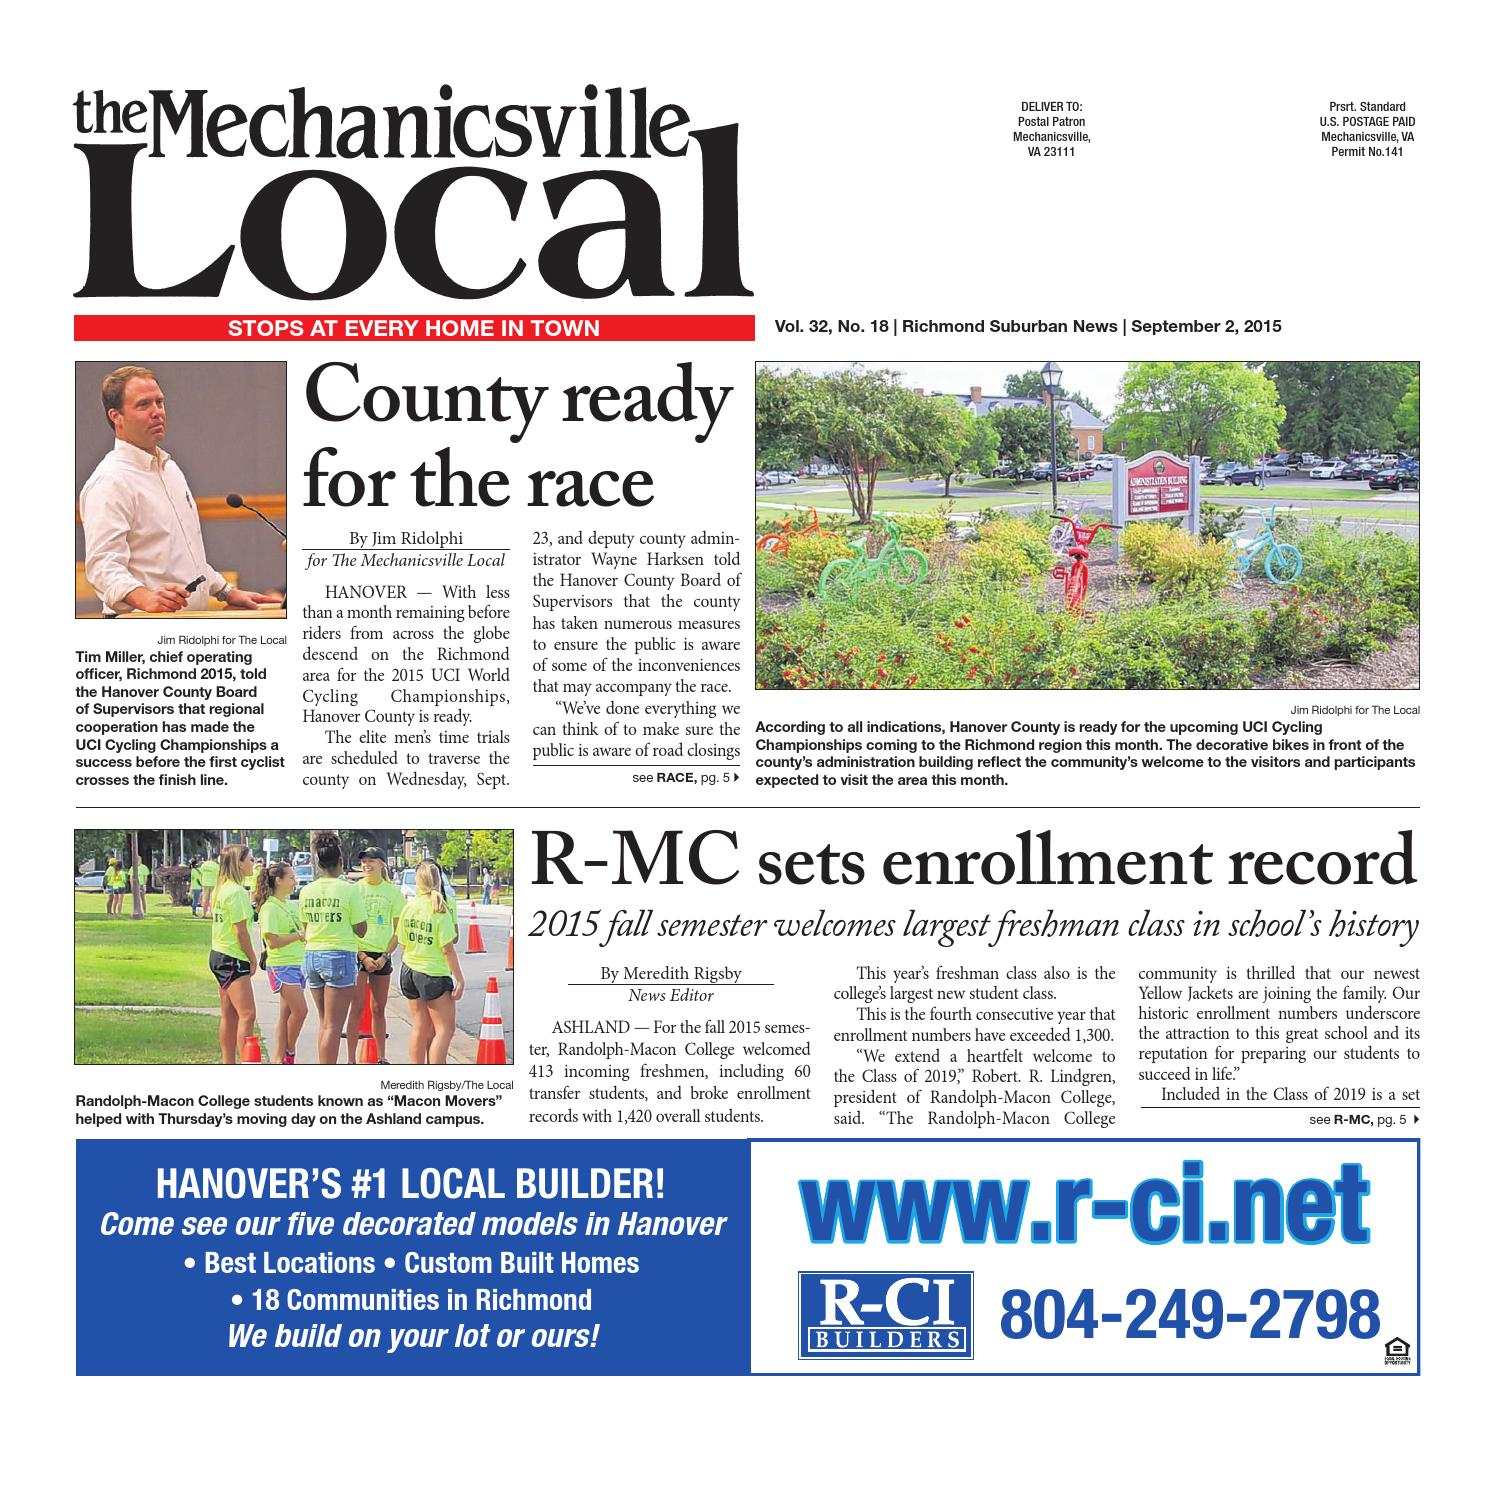 0514d35cb 09 02 2015 by The Mechanicsville Local - issuu